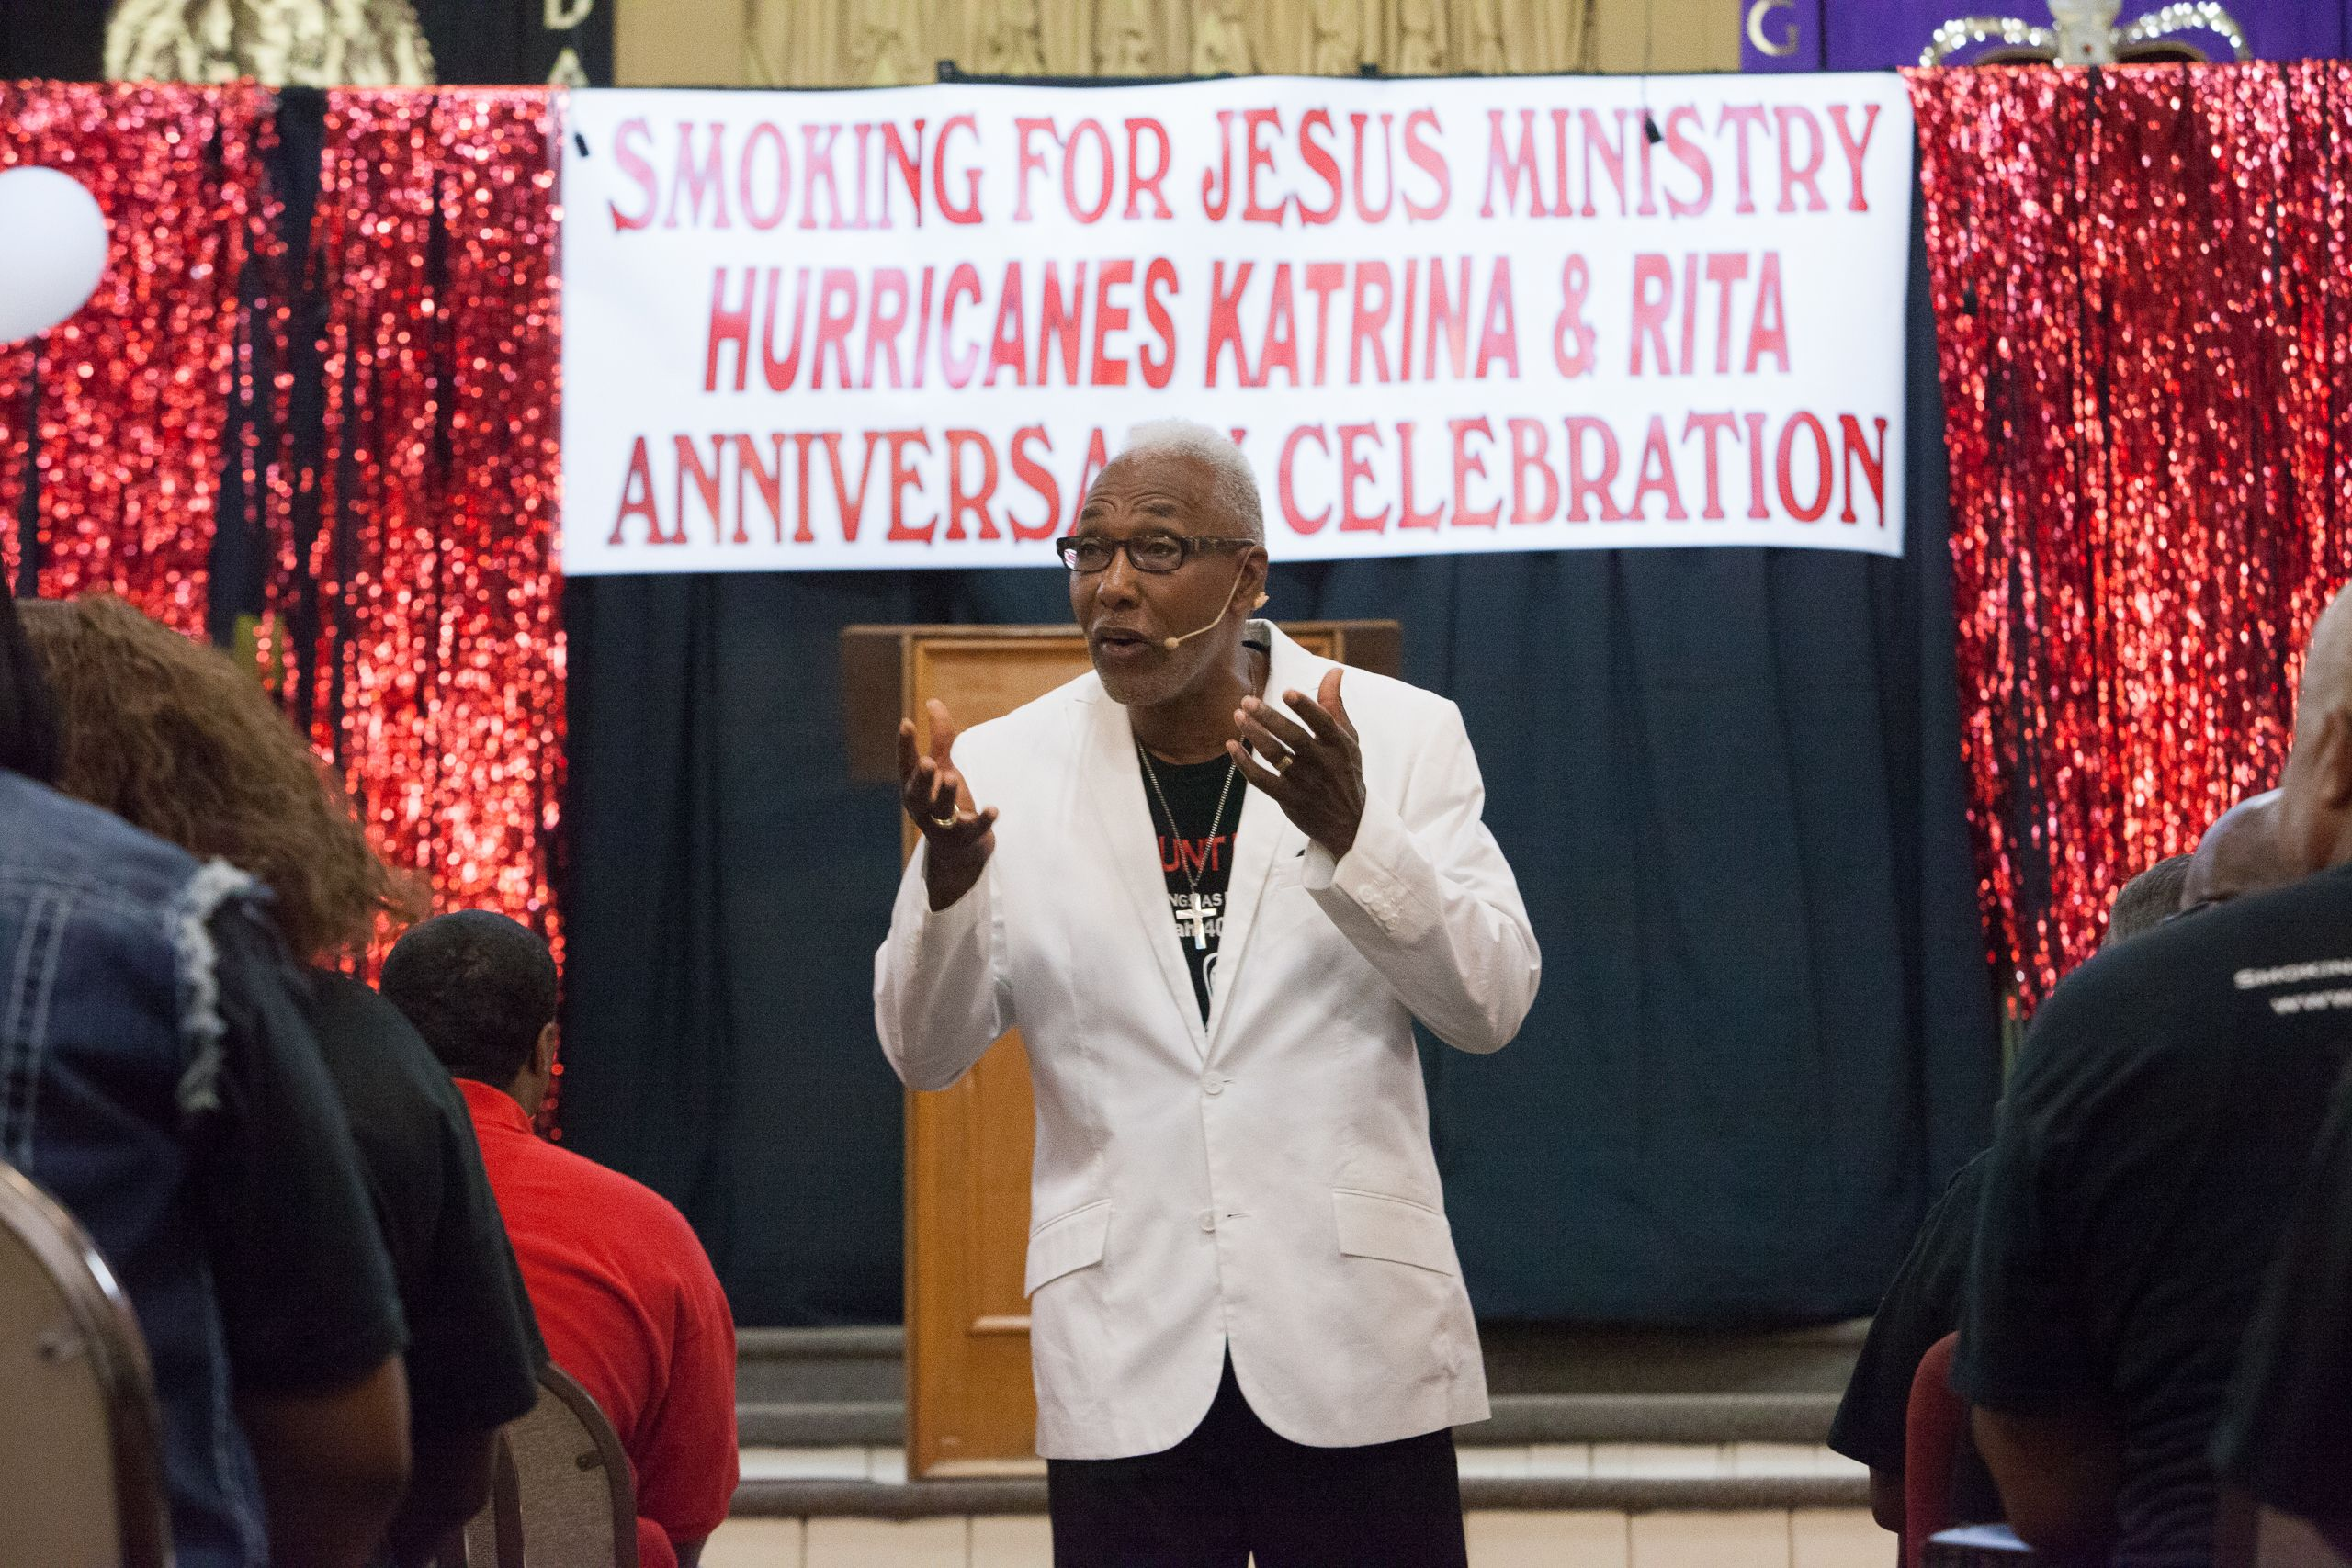 Pastor Monnet addresses his flock on the anniversary of their departure from New Orleans